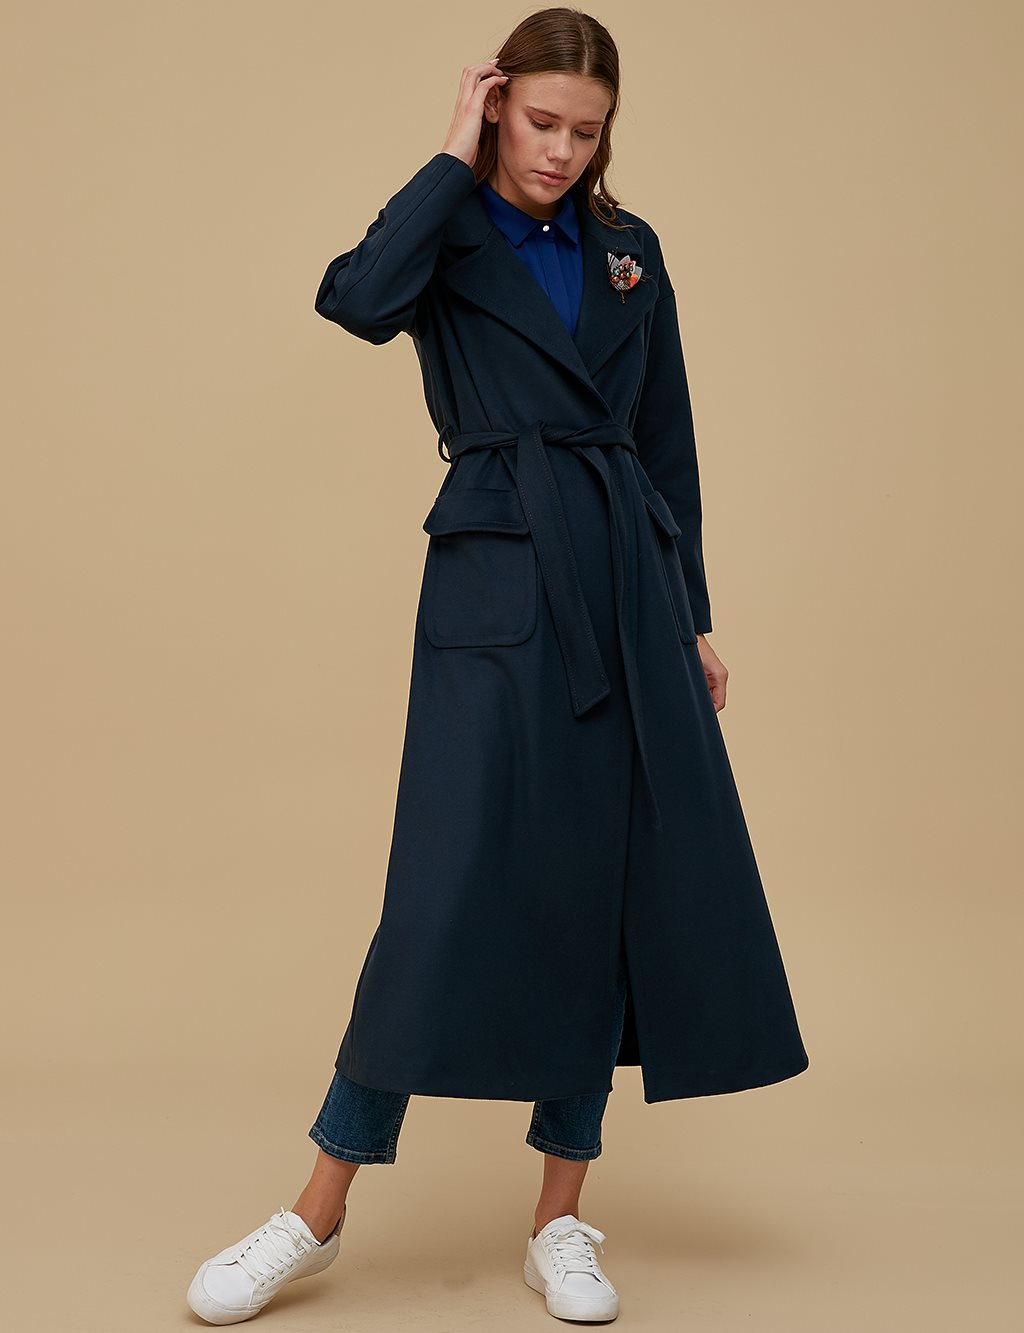 Overcoat With Belt A9 17007 Navy